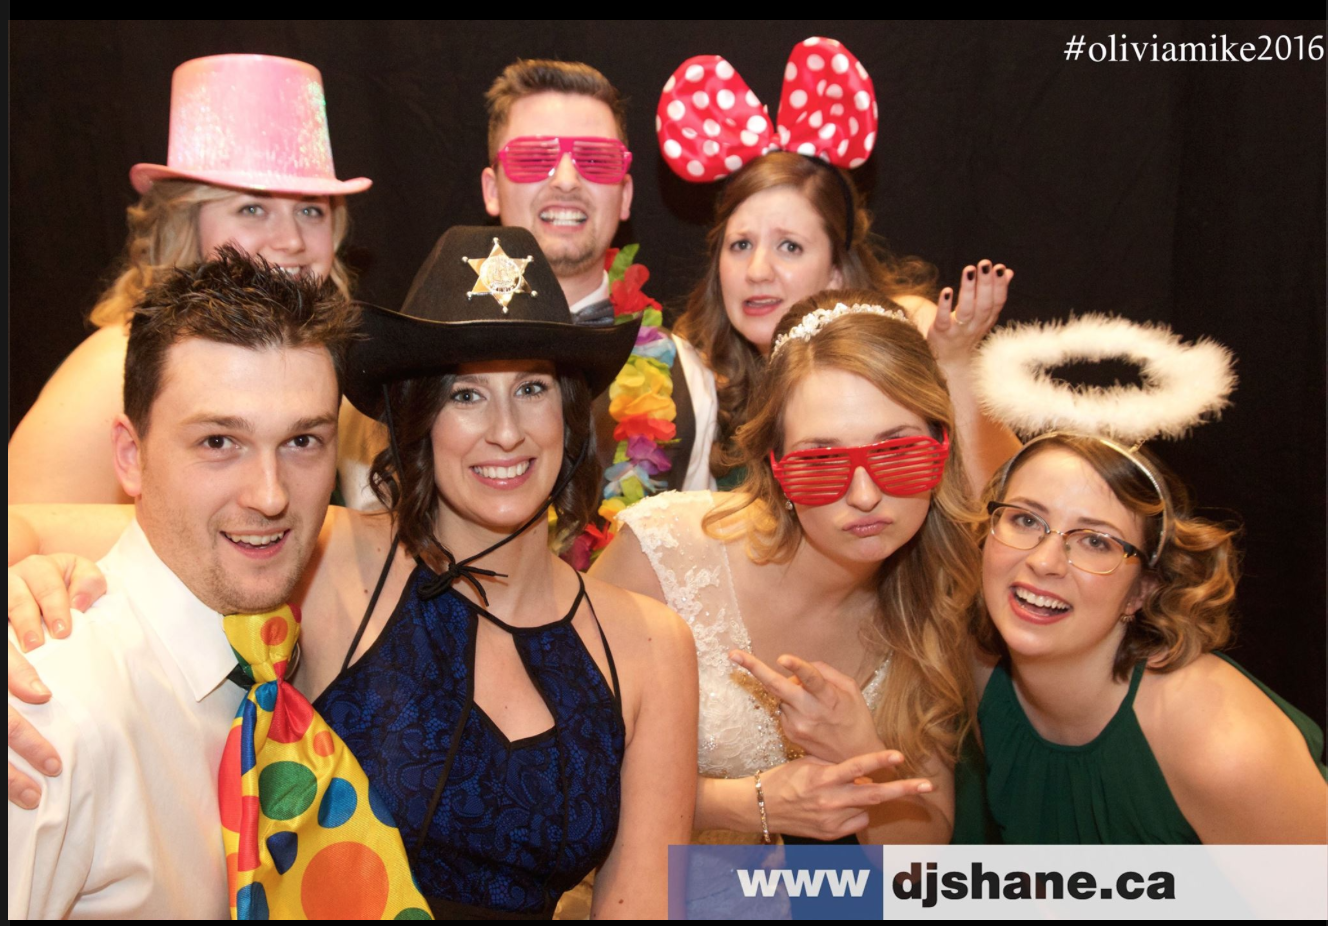 Photo Booth de Olivia & Mike's #oliviamike2016